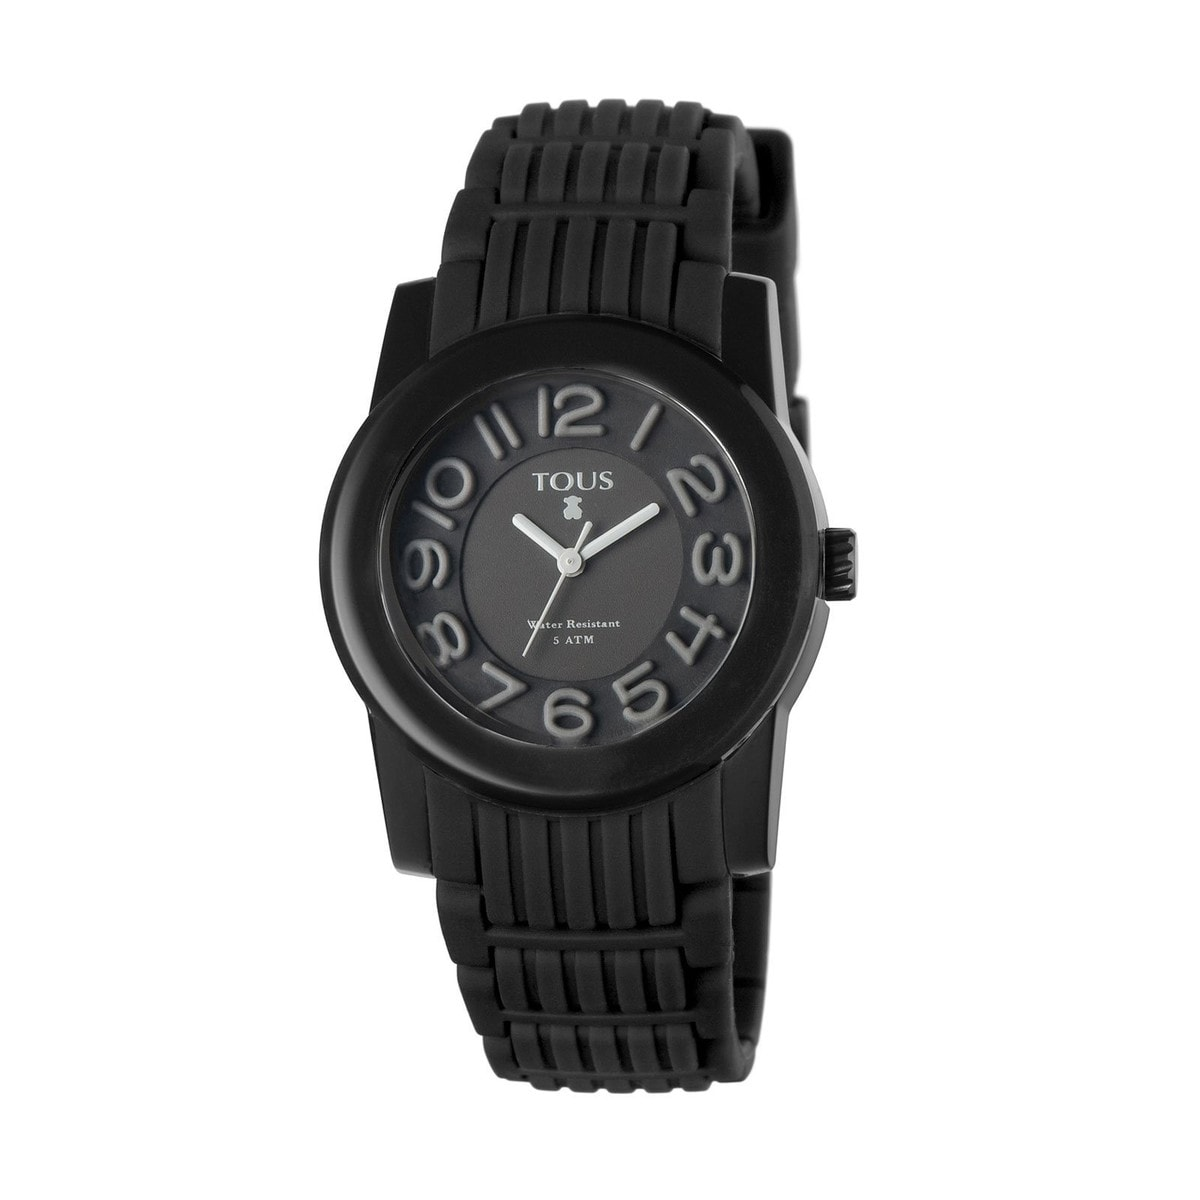 Steel Otos Watch with black Silicone strap